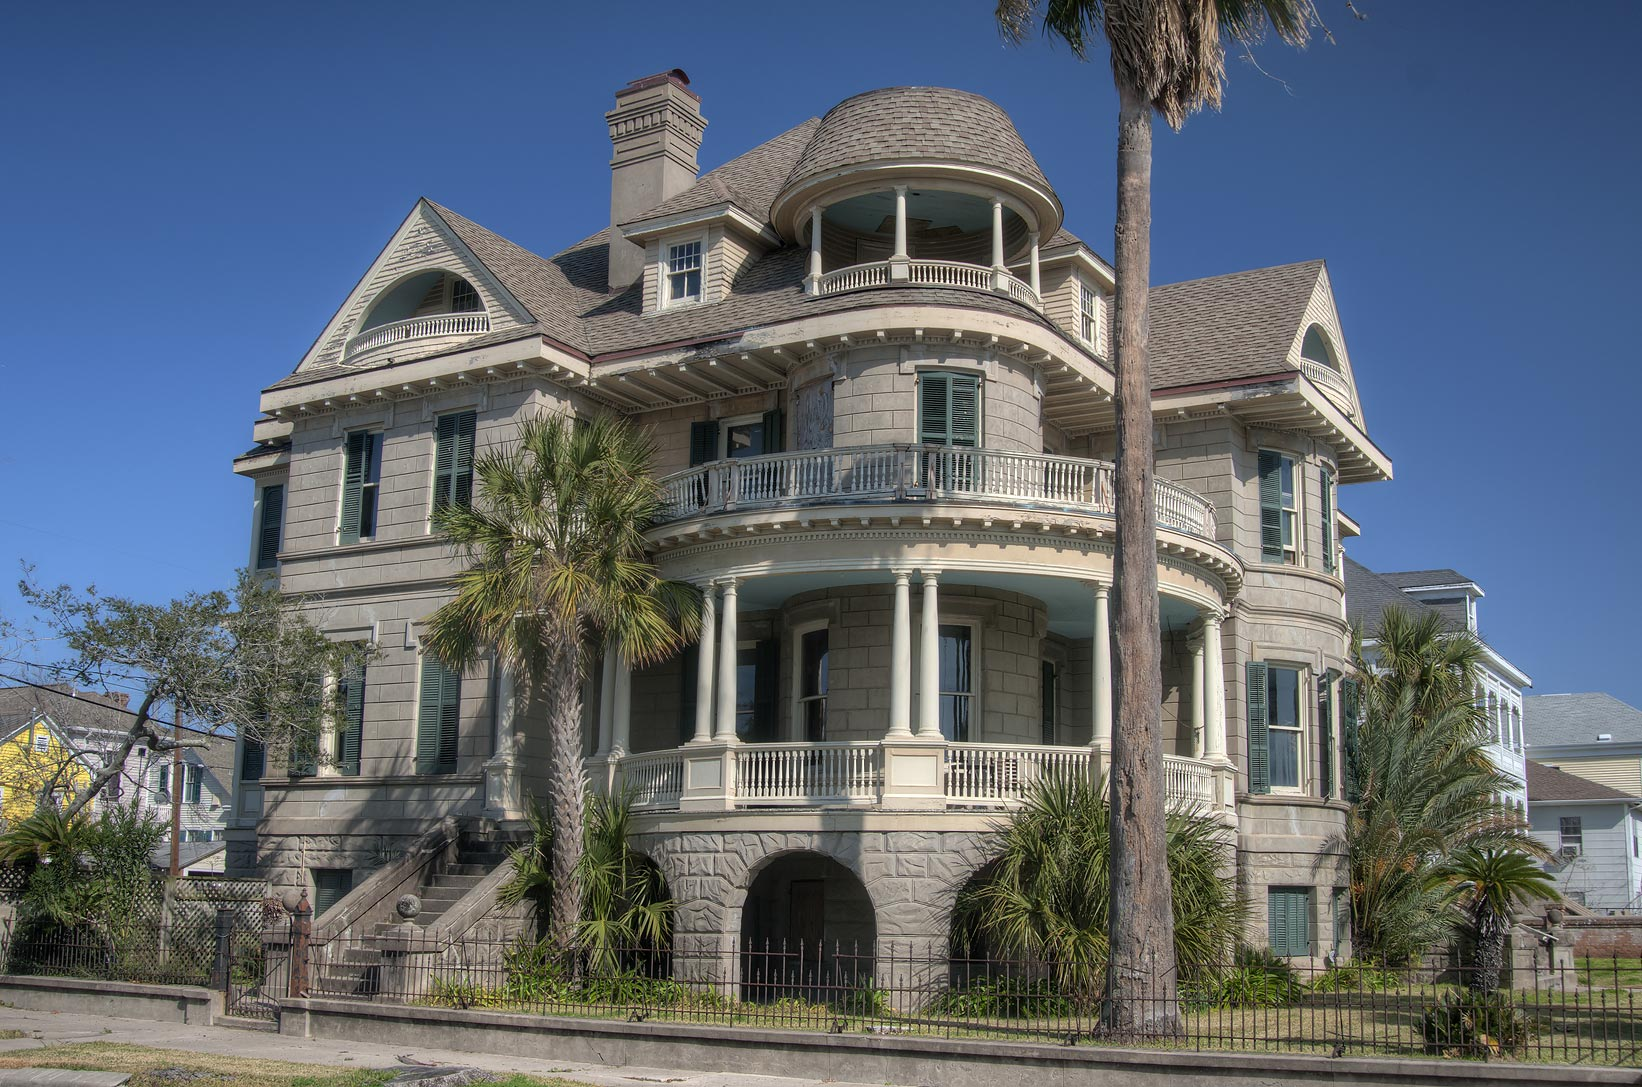 Clarke-Jockusch House (1895) at 1728 Sealy St. in...Historic District. Galveston, Texas